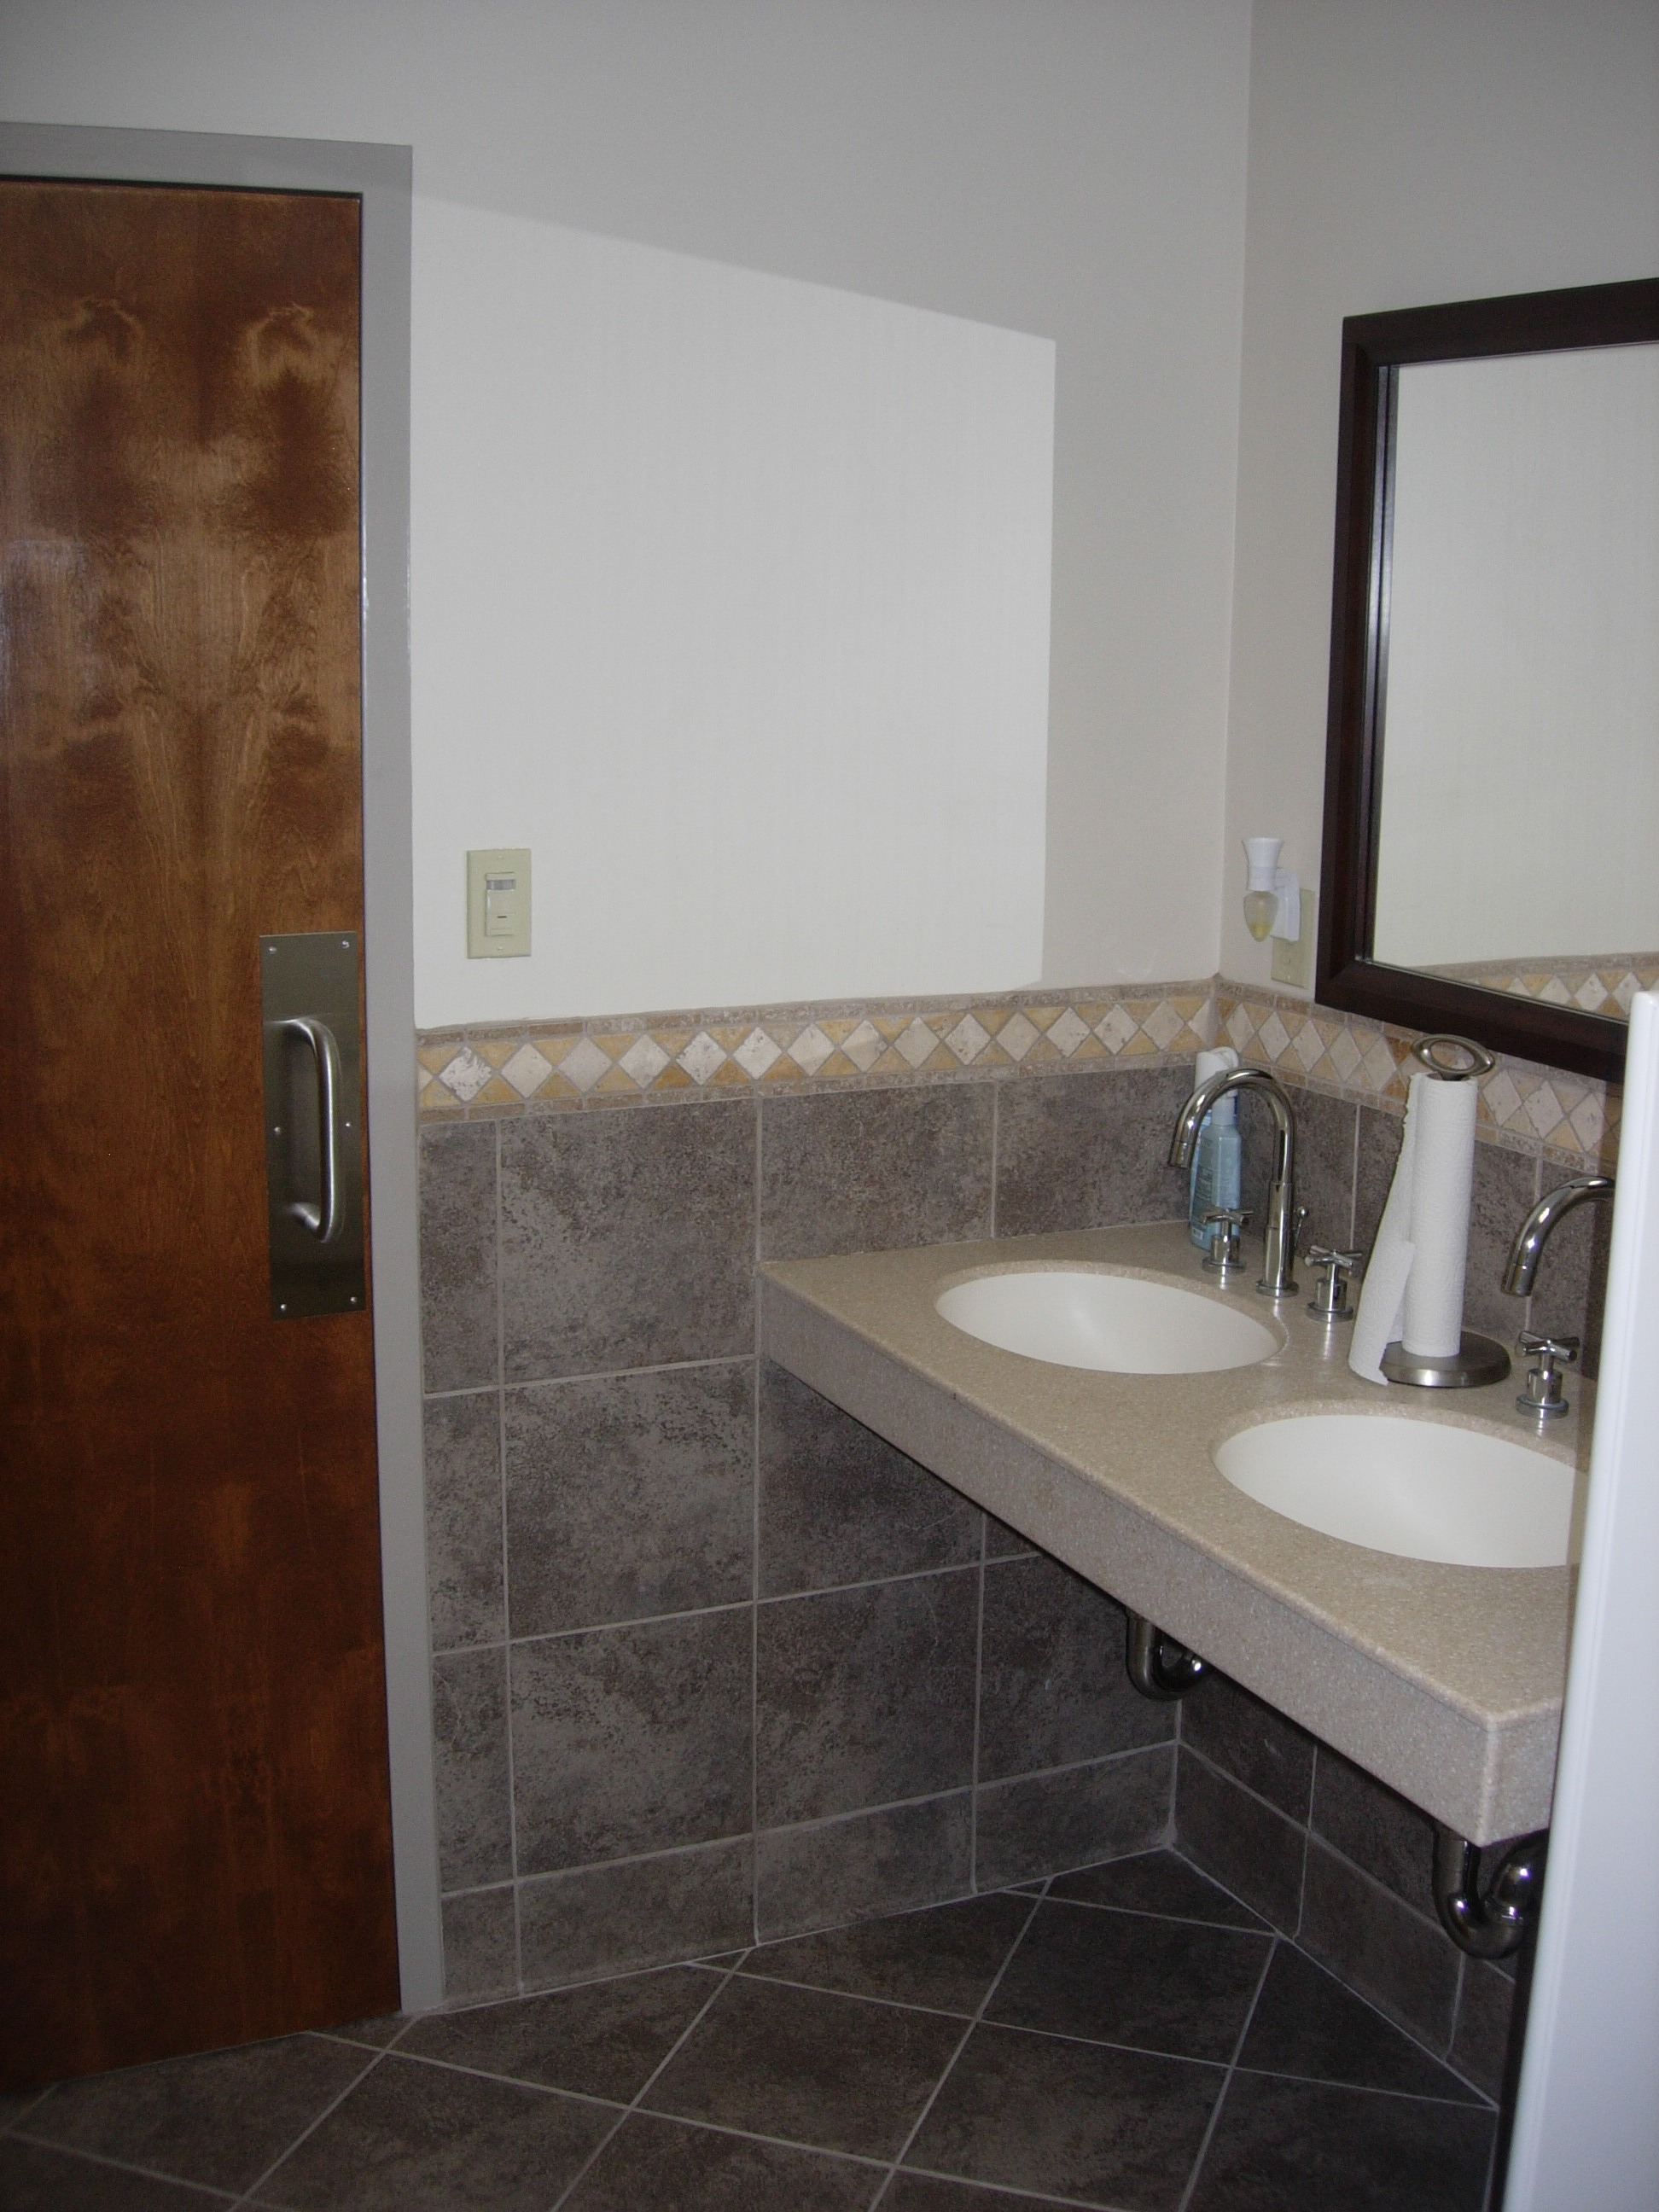 Grace baptist church restroom remodel easterday for Washroom renovation ideas